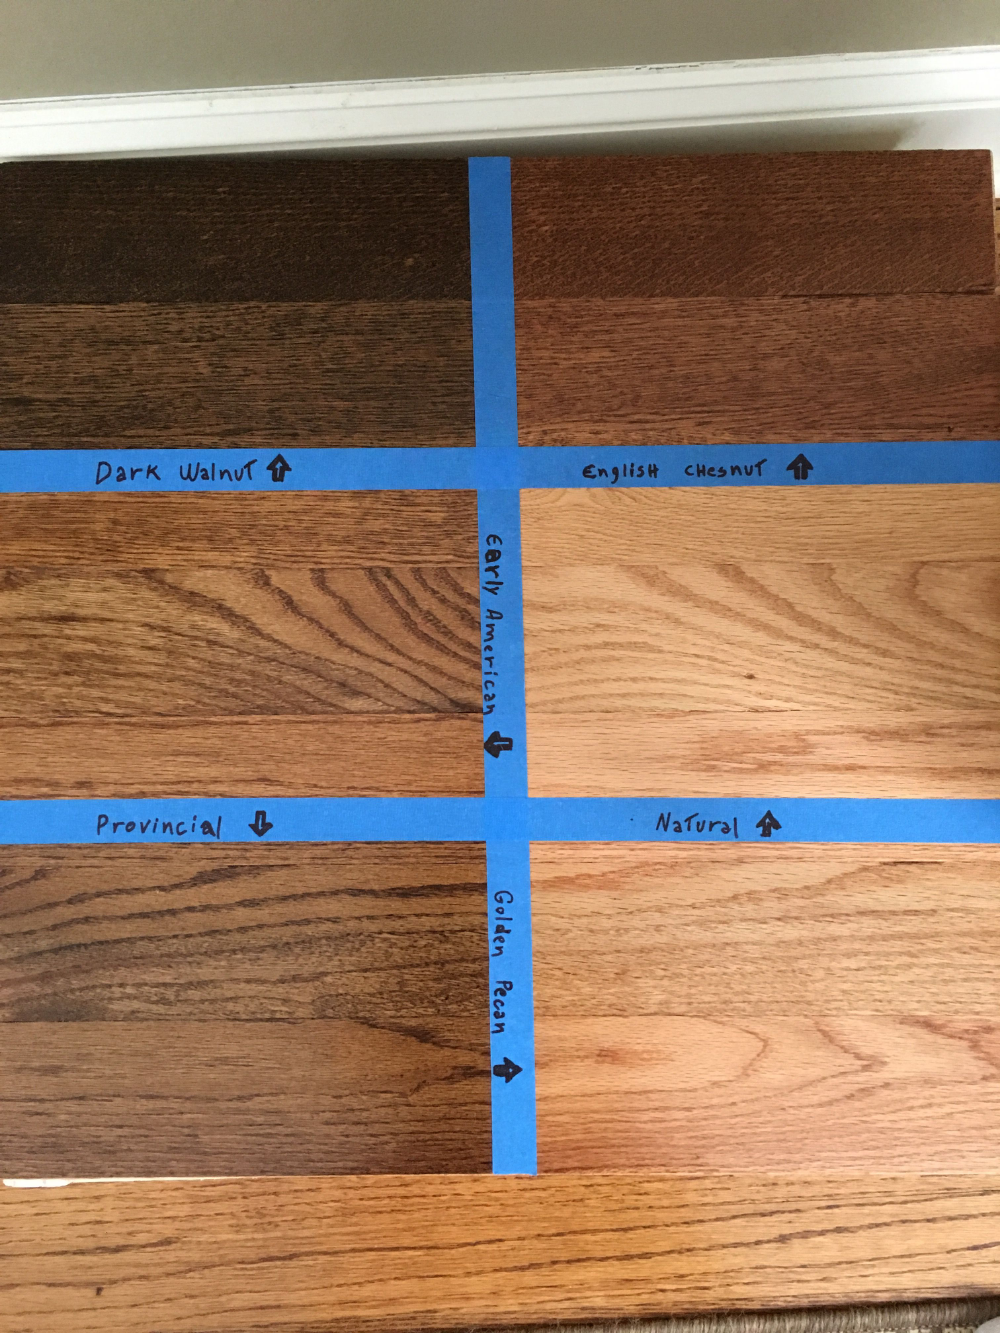 Provincial Stain Minwax Hf63 Roccommunity Wood Floor Stain Colors Staining Wood Hardwood Floor Stain Colors